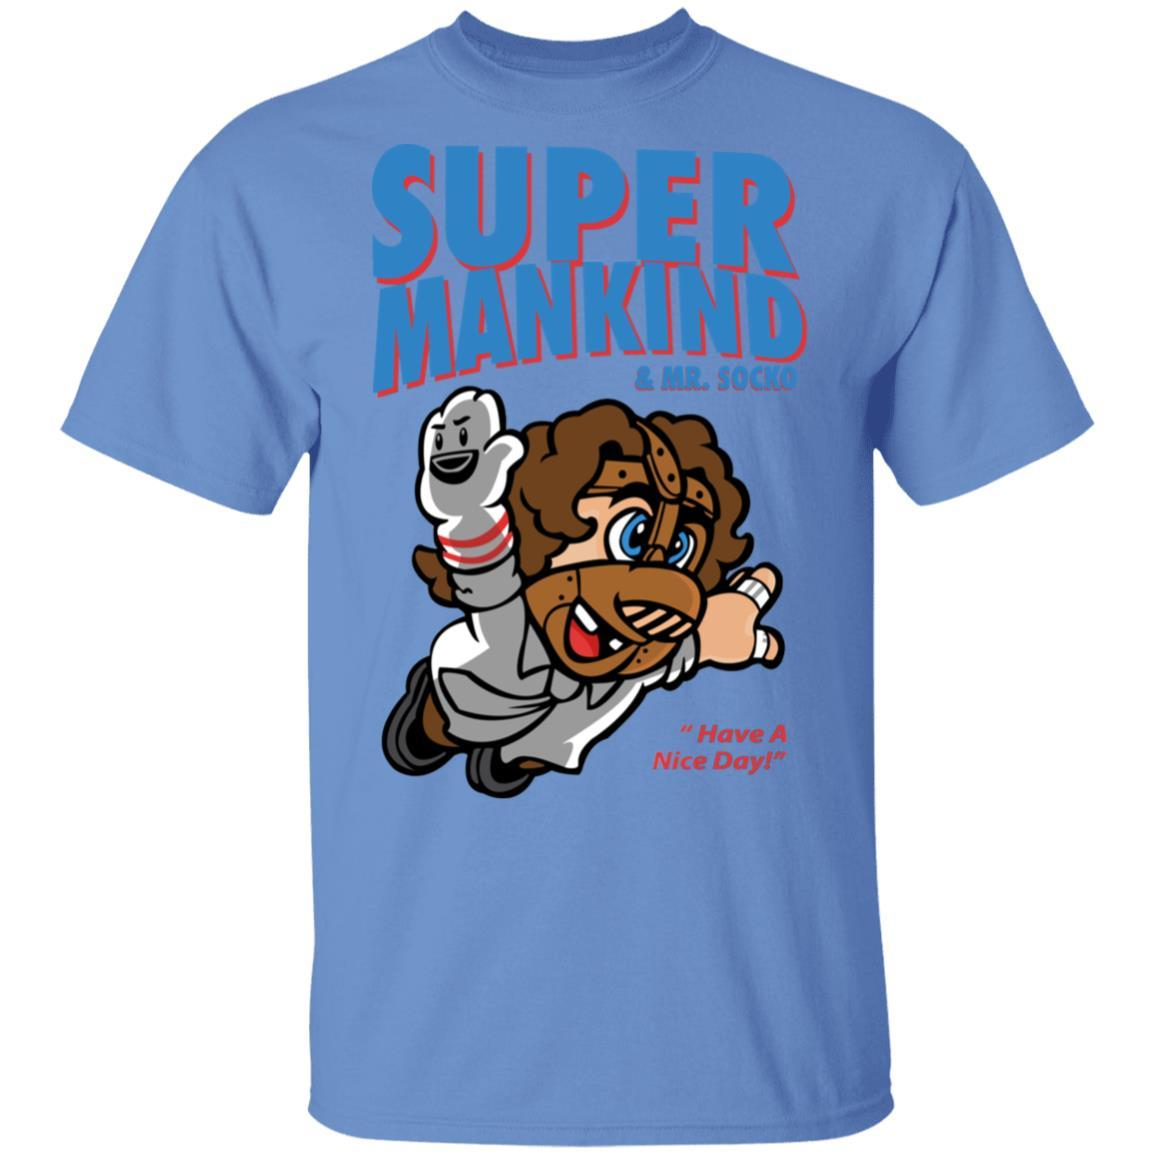 Super Mankind & Mr Socko Have A Nice Day T-Shirts, Hoodies 1049-9955-91844582-48160 - Tee Ript